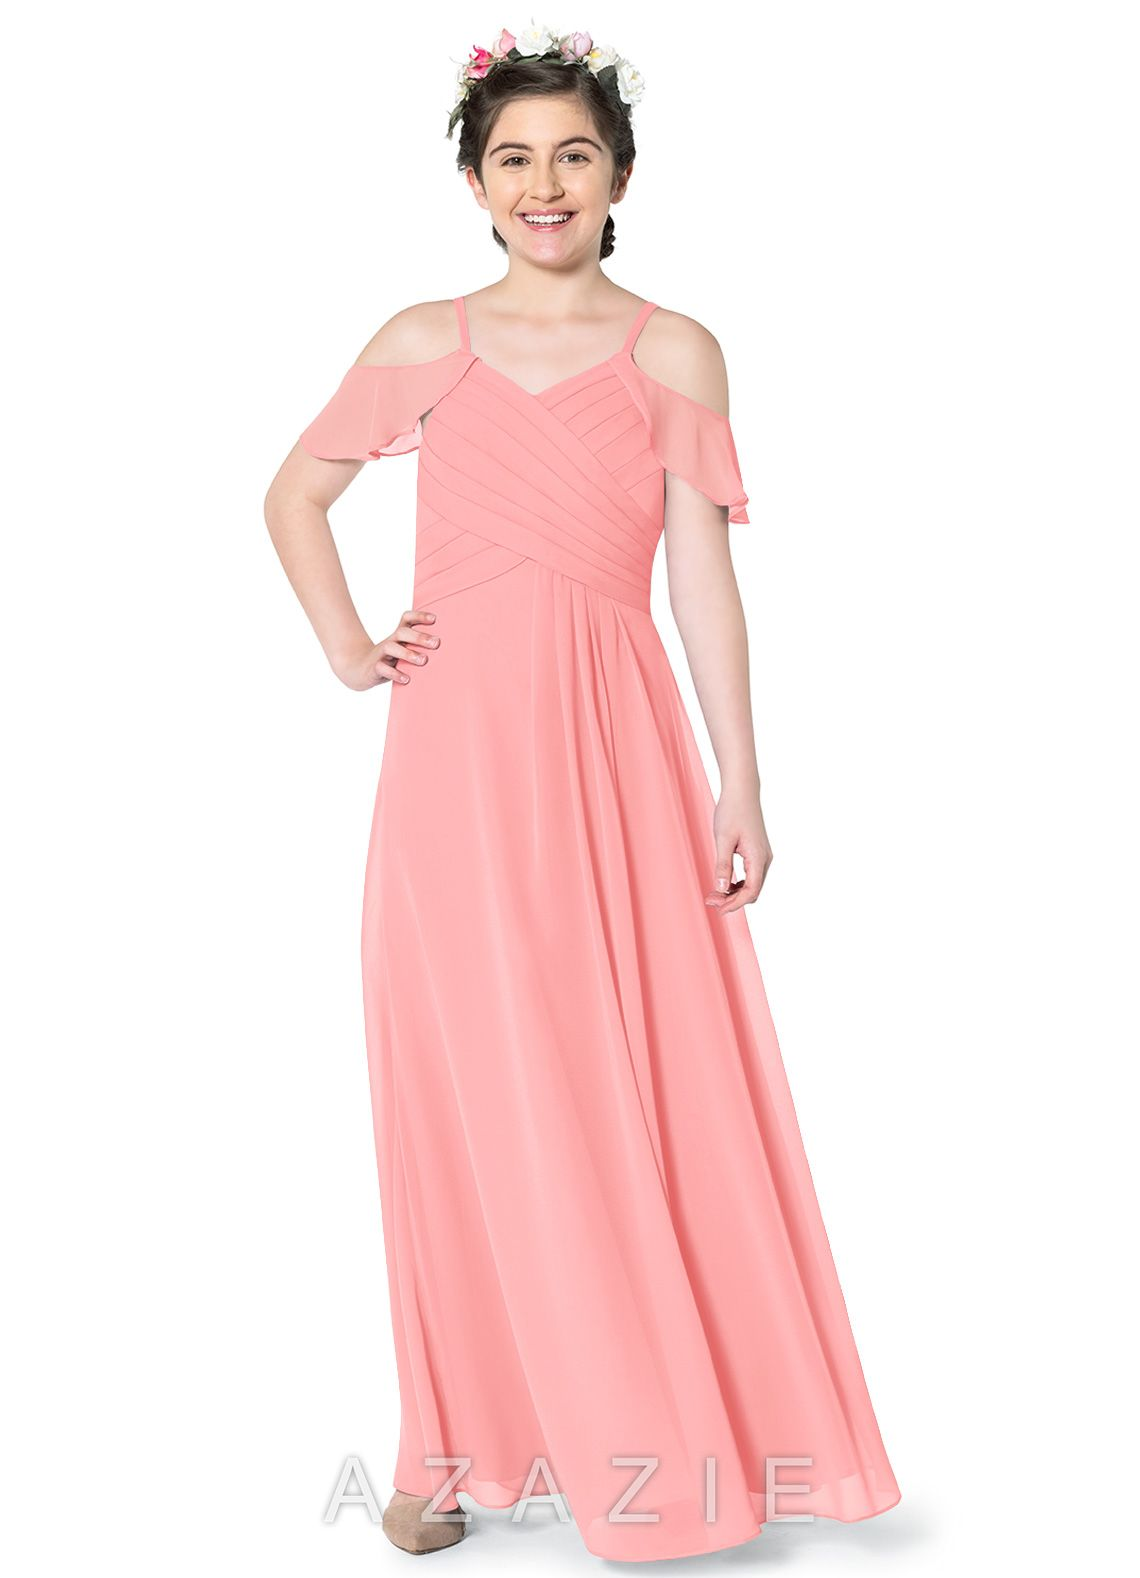 c47de7dc4a9 Azazie Dakota JBD Junior Bridesmaid Dress